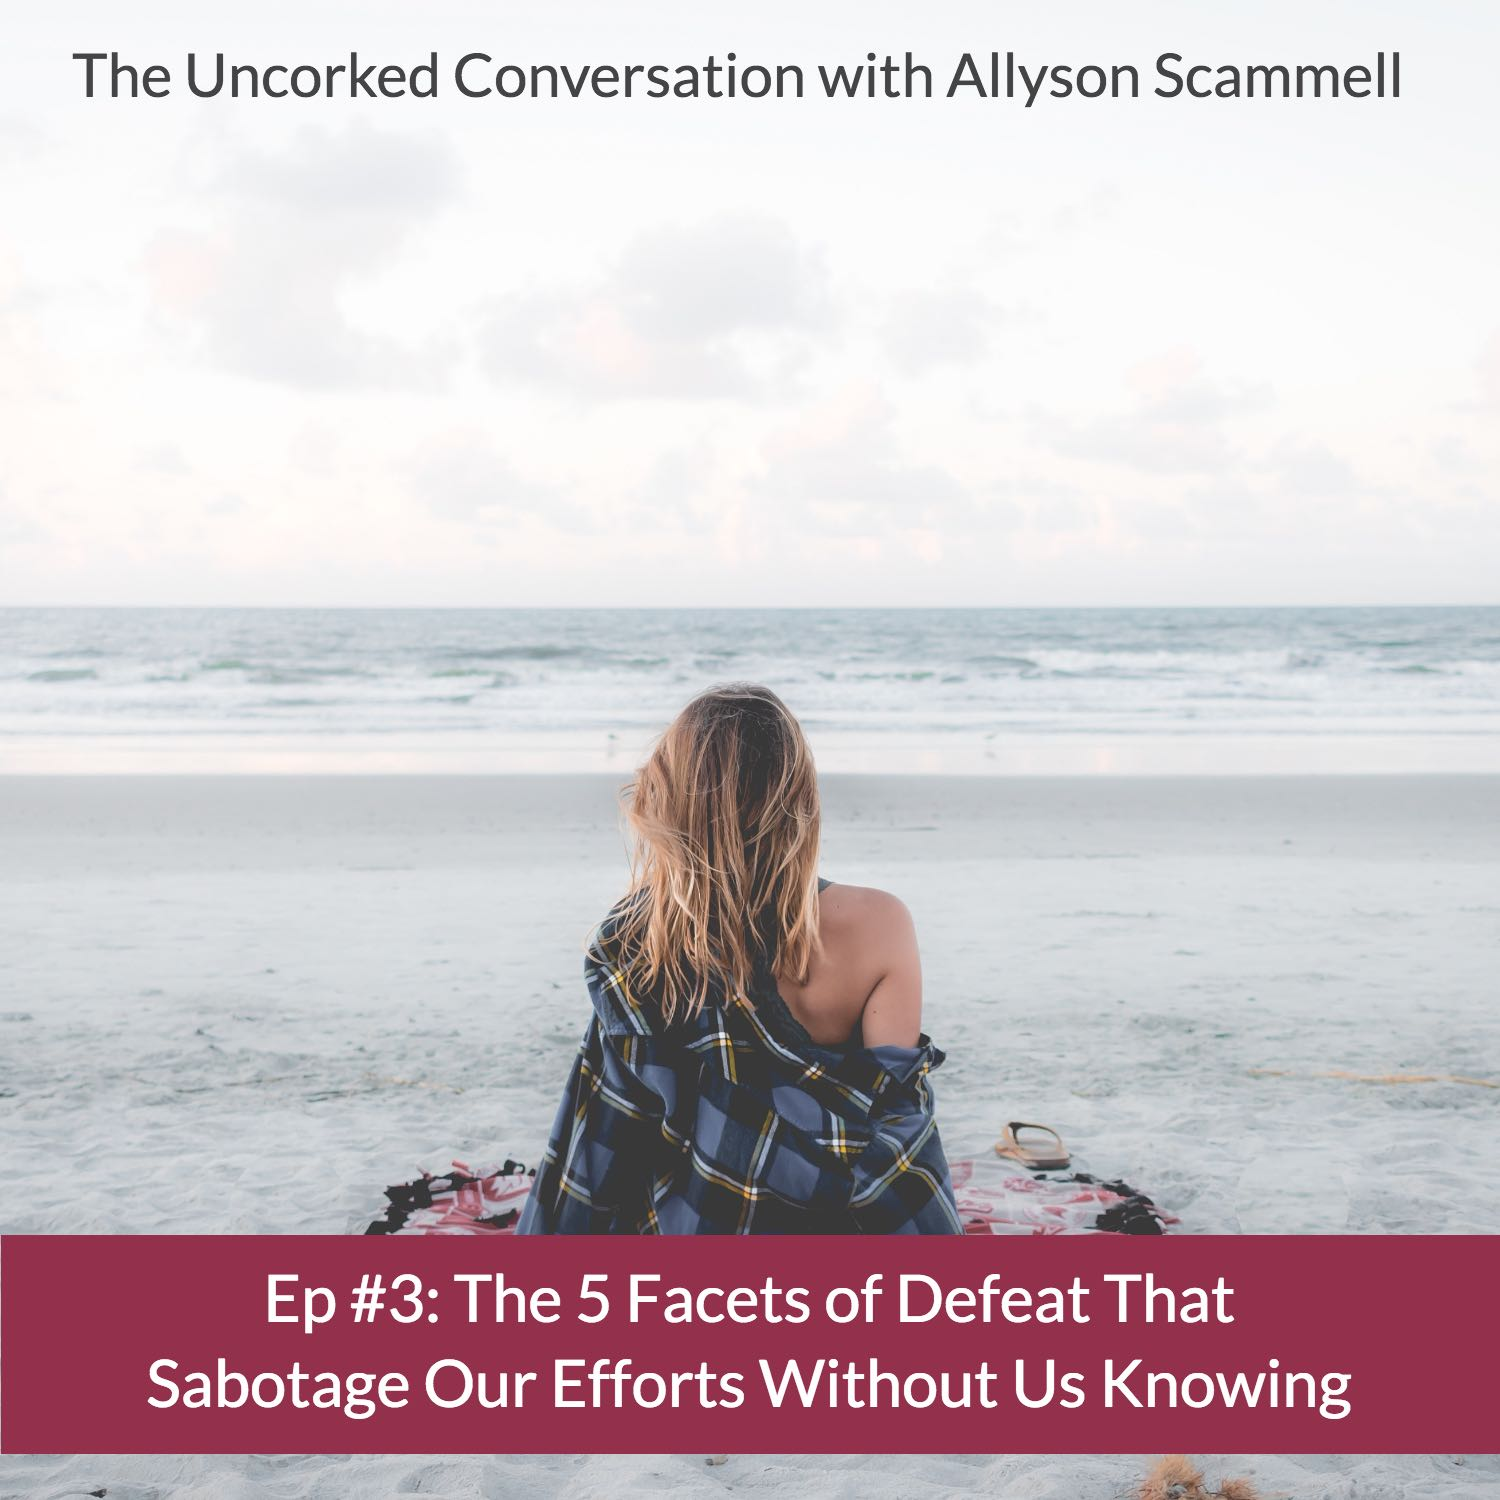 Ep #3: The 5 Facets of Defeat That Sabotage Our Efforts Without Us Knowing